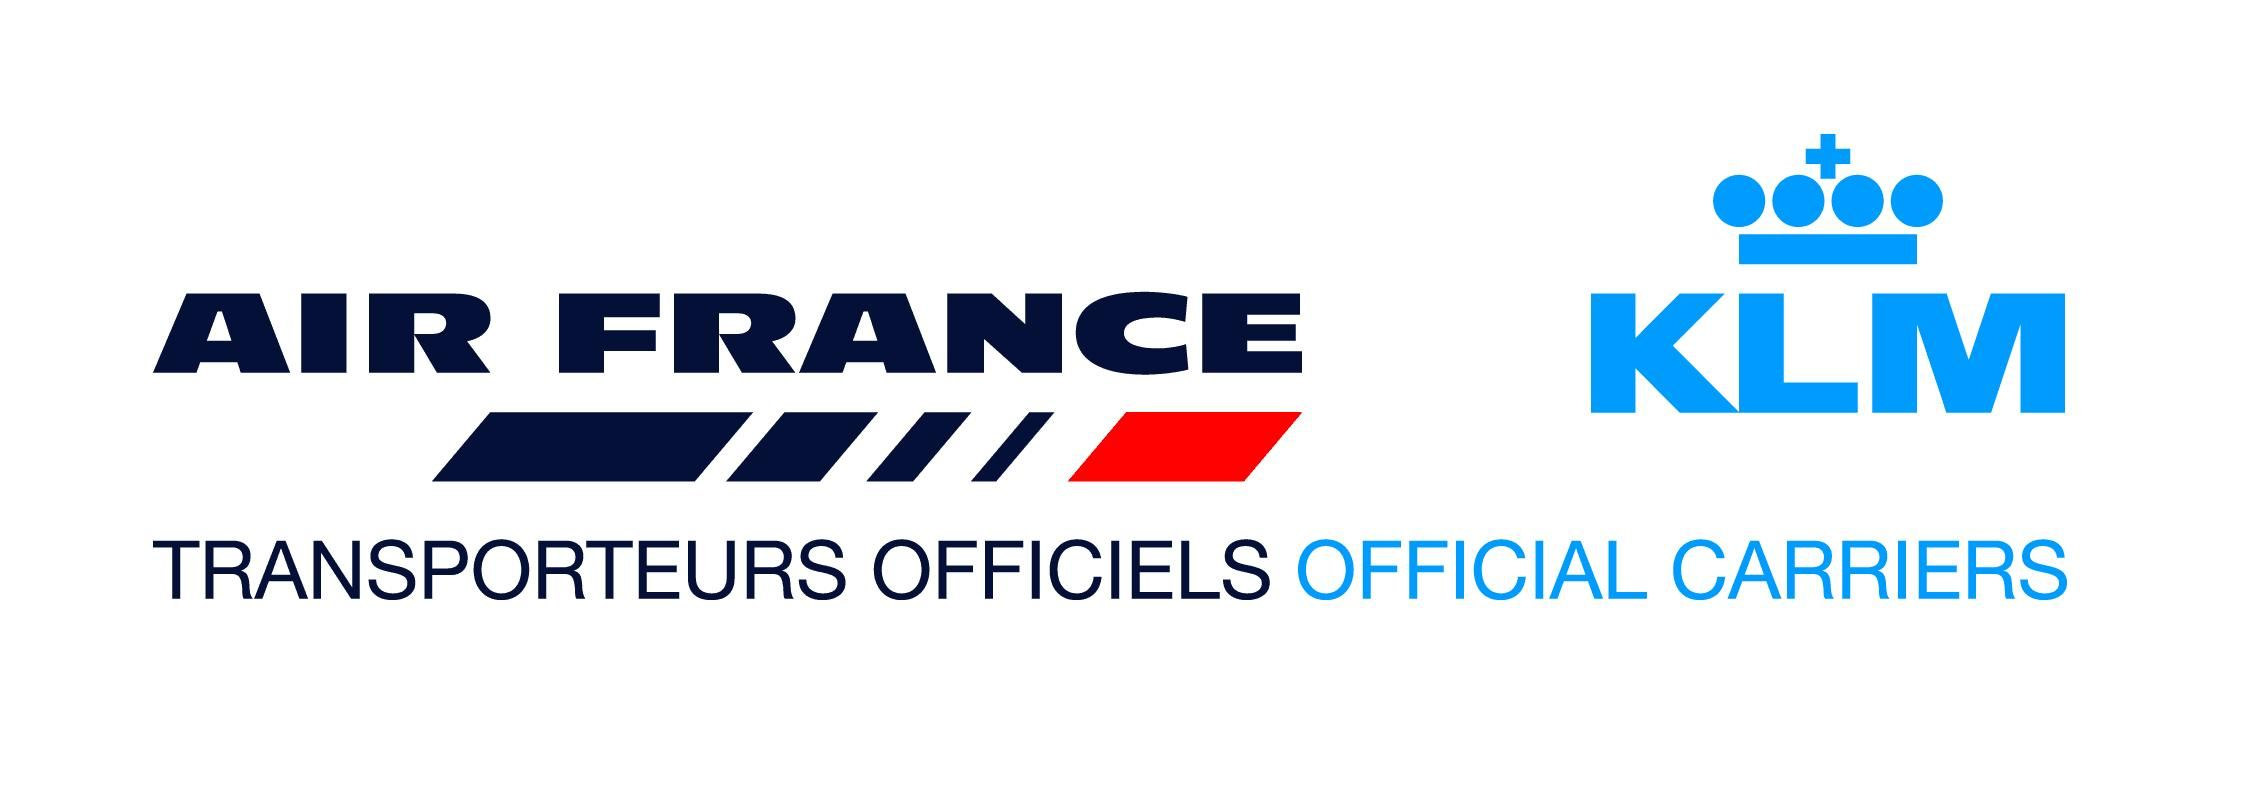 Air France Logo - Air France-KLM « Logos & Brands Directory